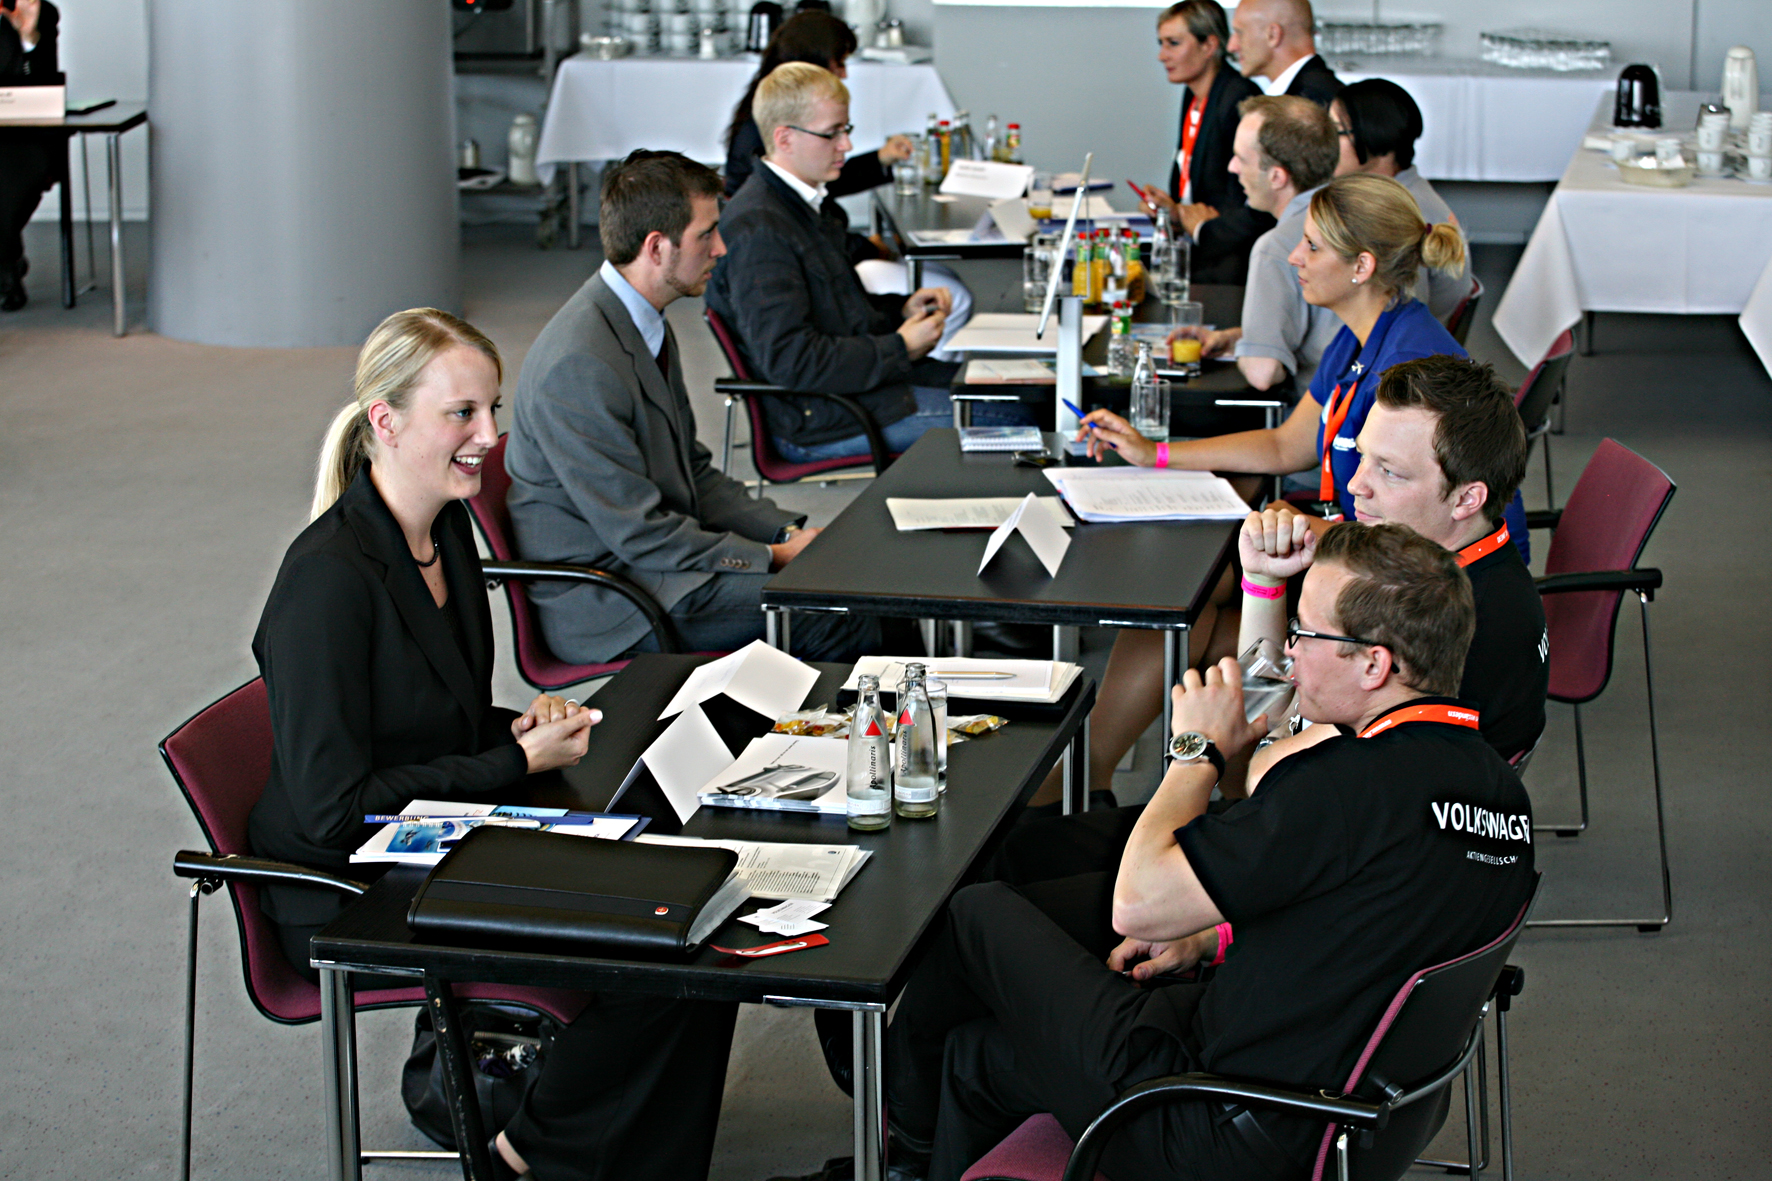 speed dating job interviews Speed dating job interviews to help students in their final year with their job search conferences given by employers from fields related to  career services,.